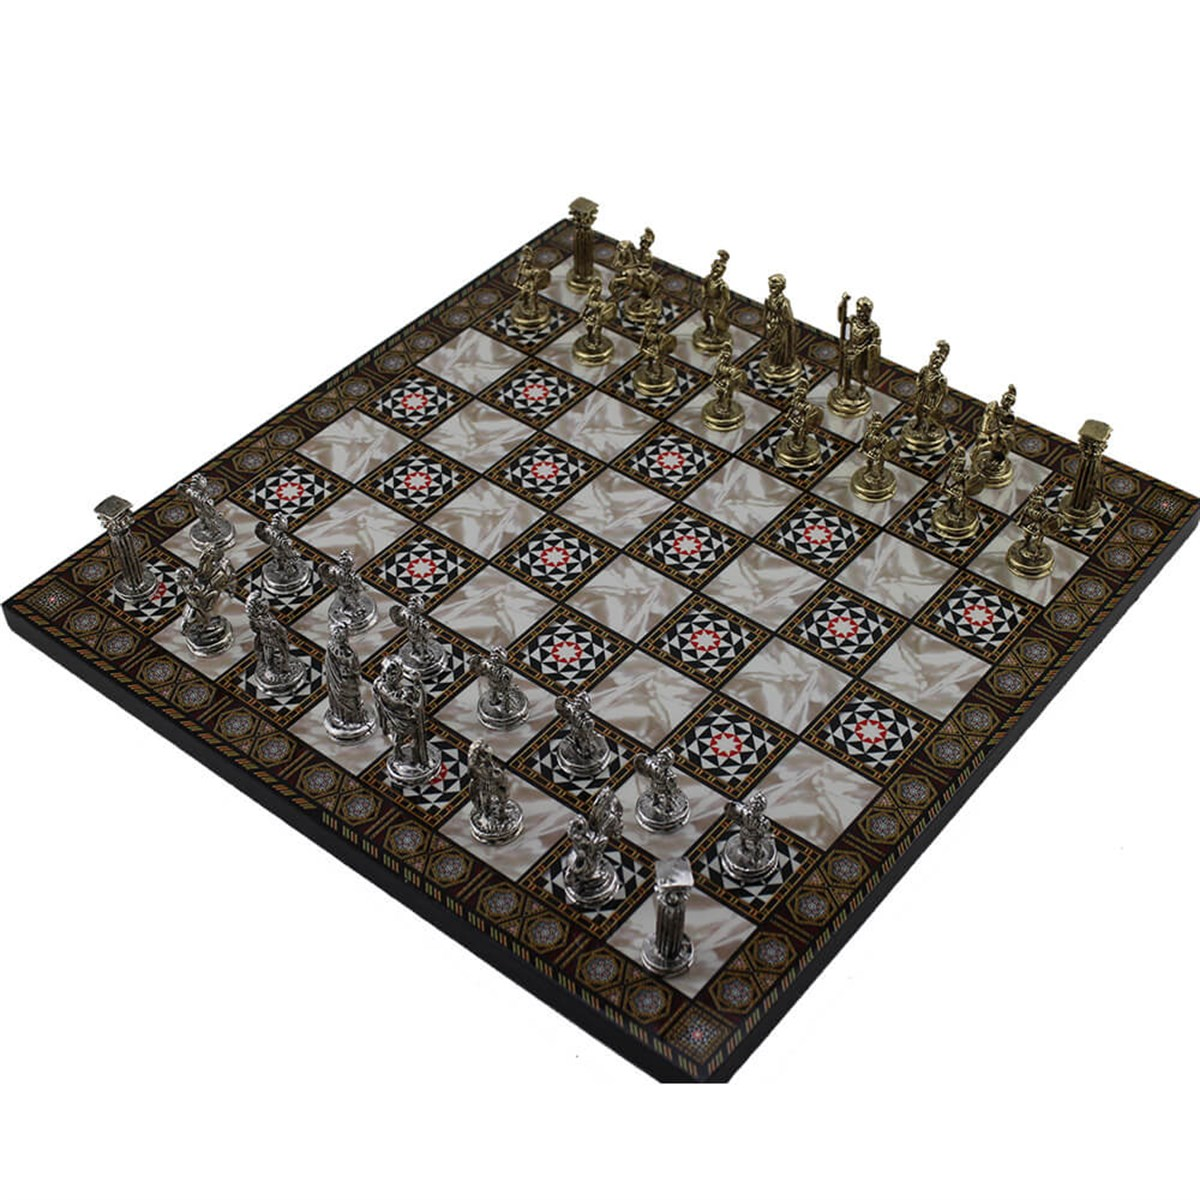 Historical Figures Of Rome Metal Chess Set For Adults, Handmade Pieces, Mosaic Design Wooden Chess Board Small SizeKing 4.8 Cm